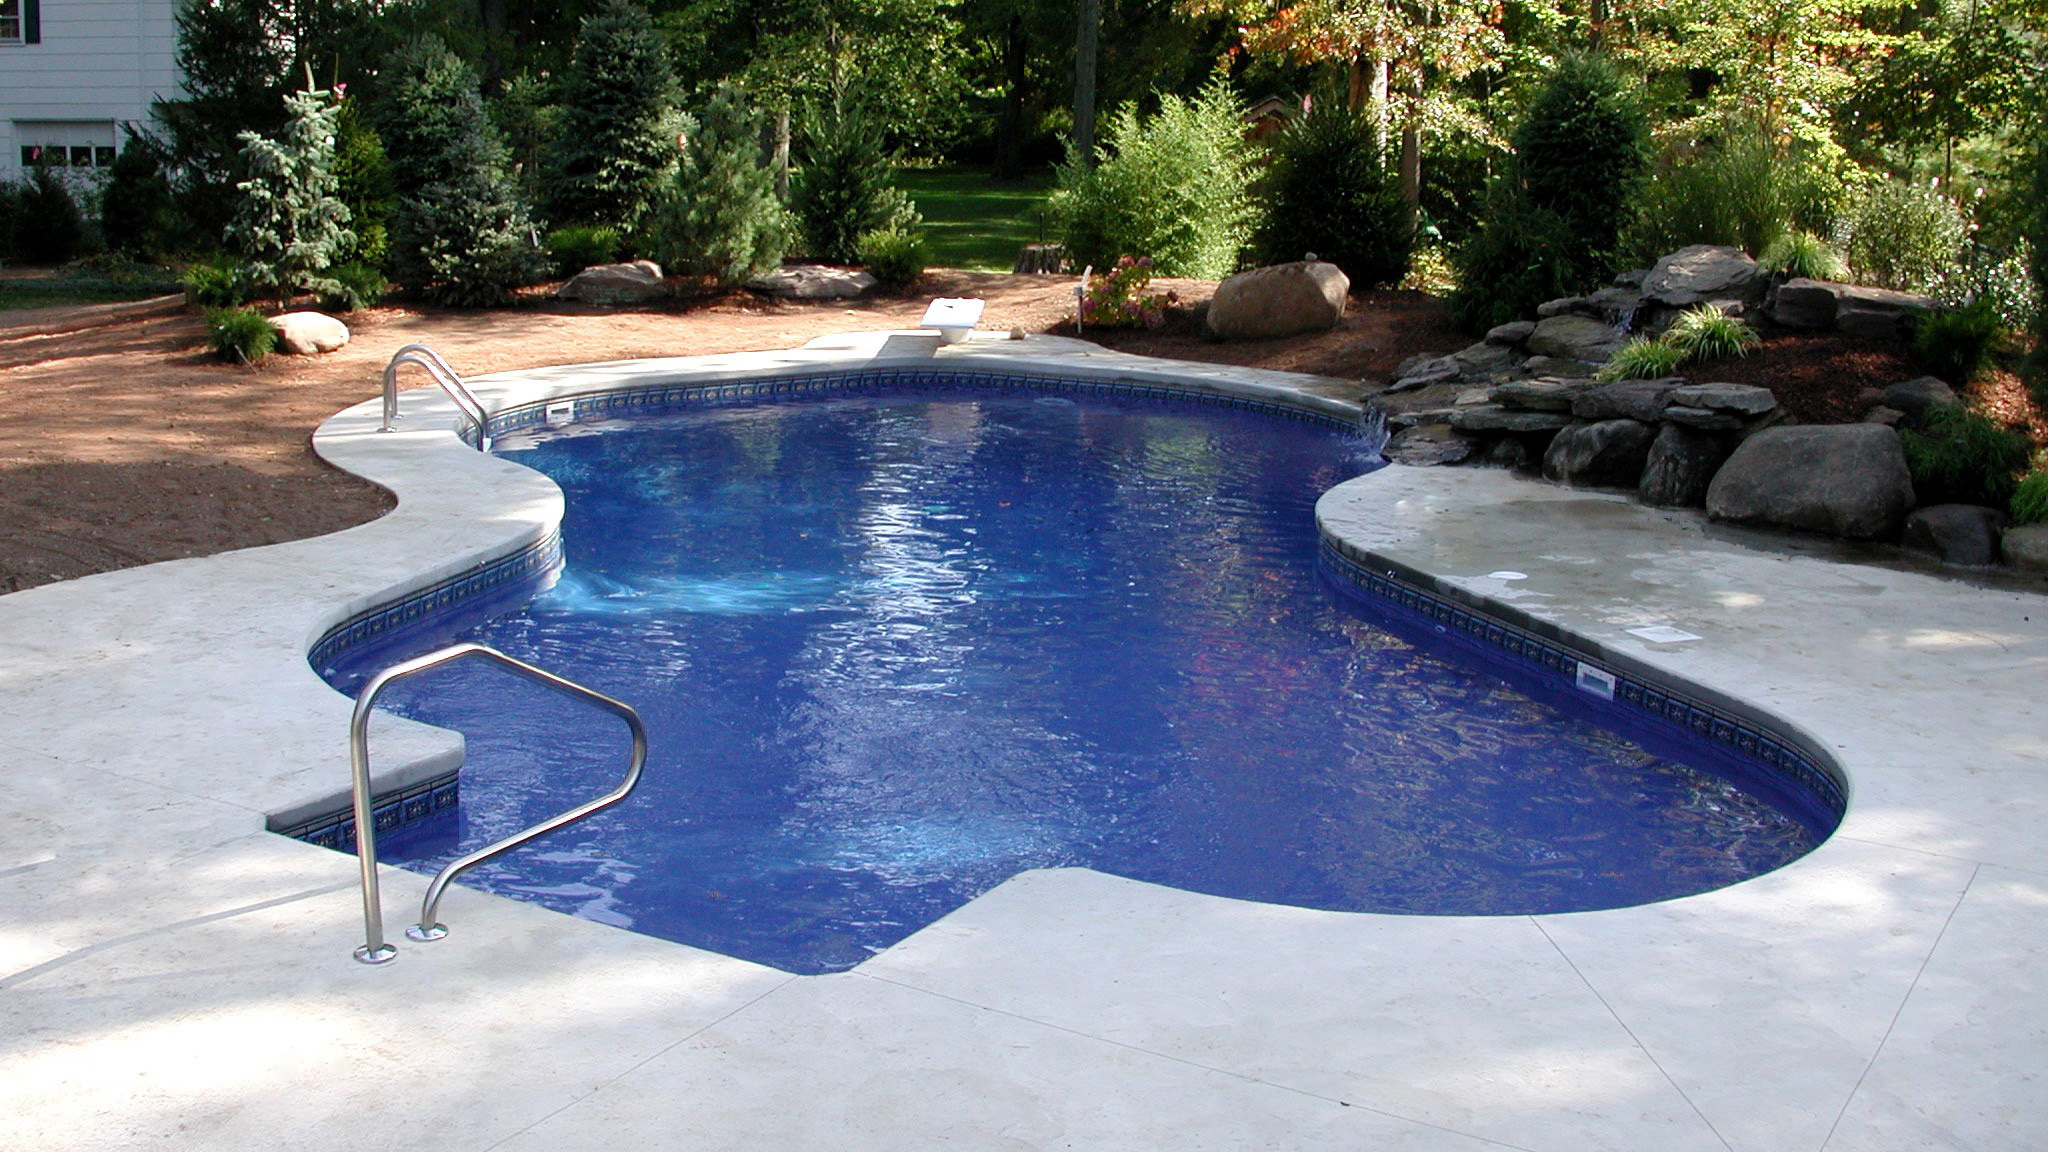 Masterson Pools | Pool Service Bergen County NJ